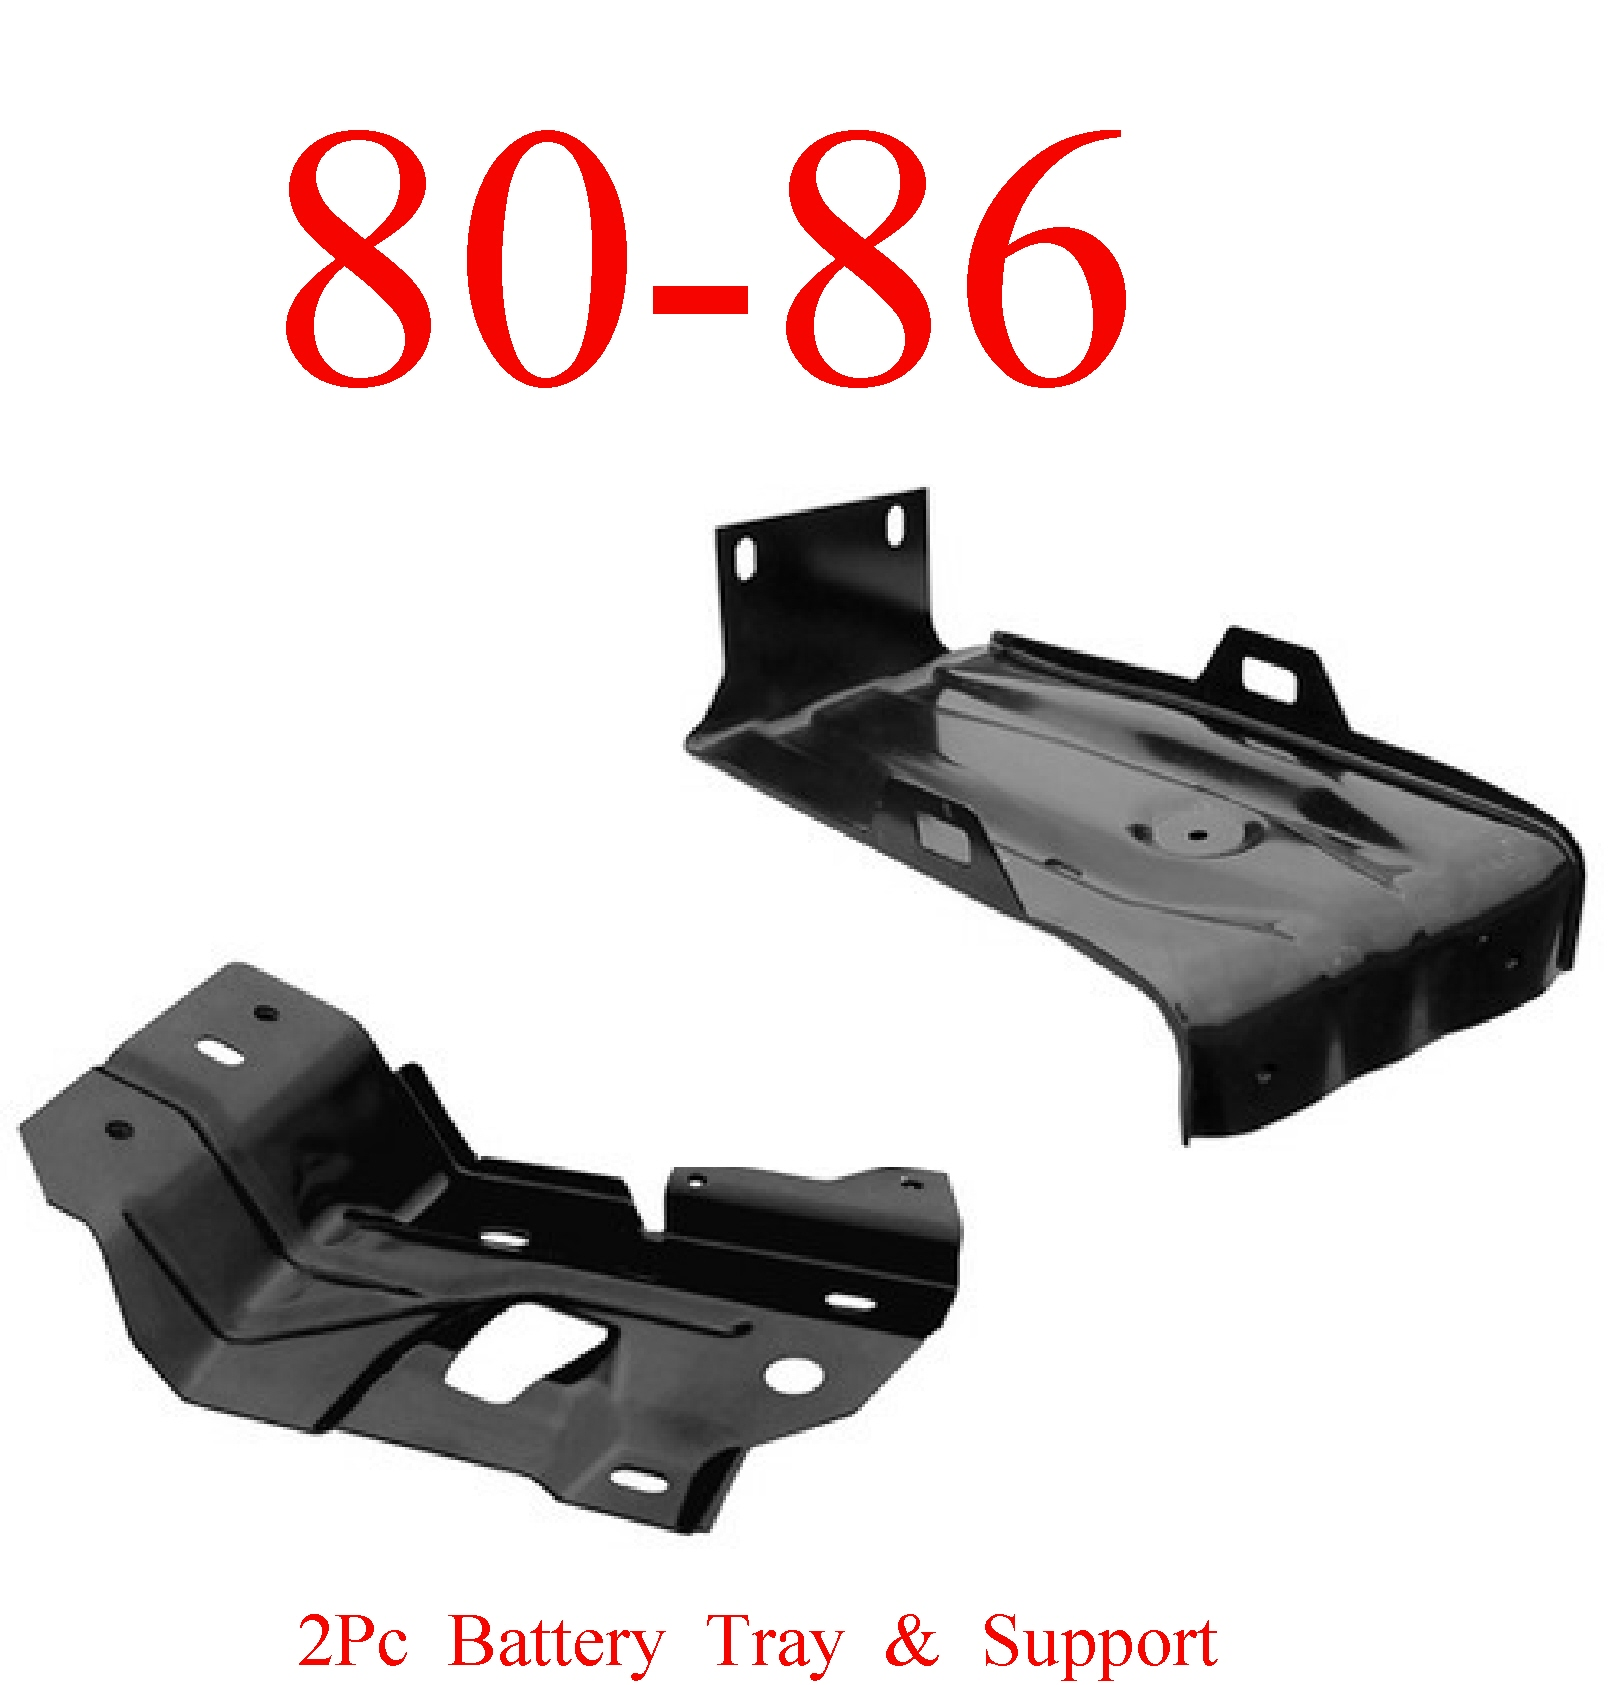 80-86 2Pc Battery Tray & Support Under Battery Tray